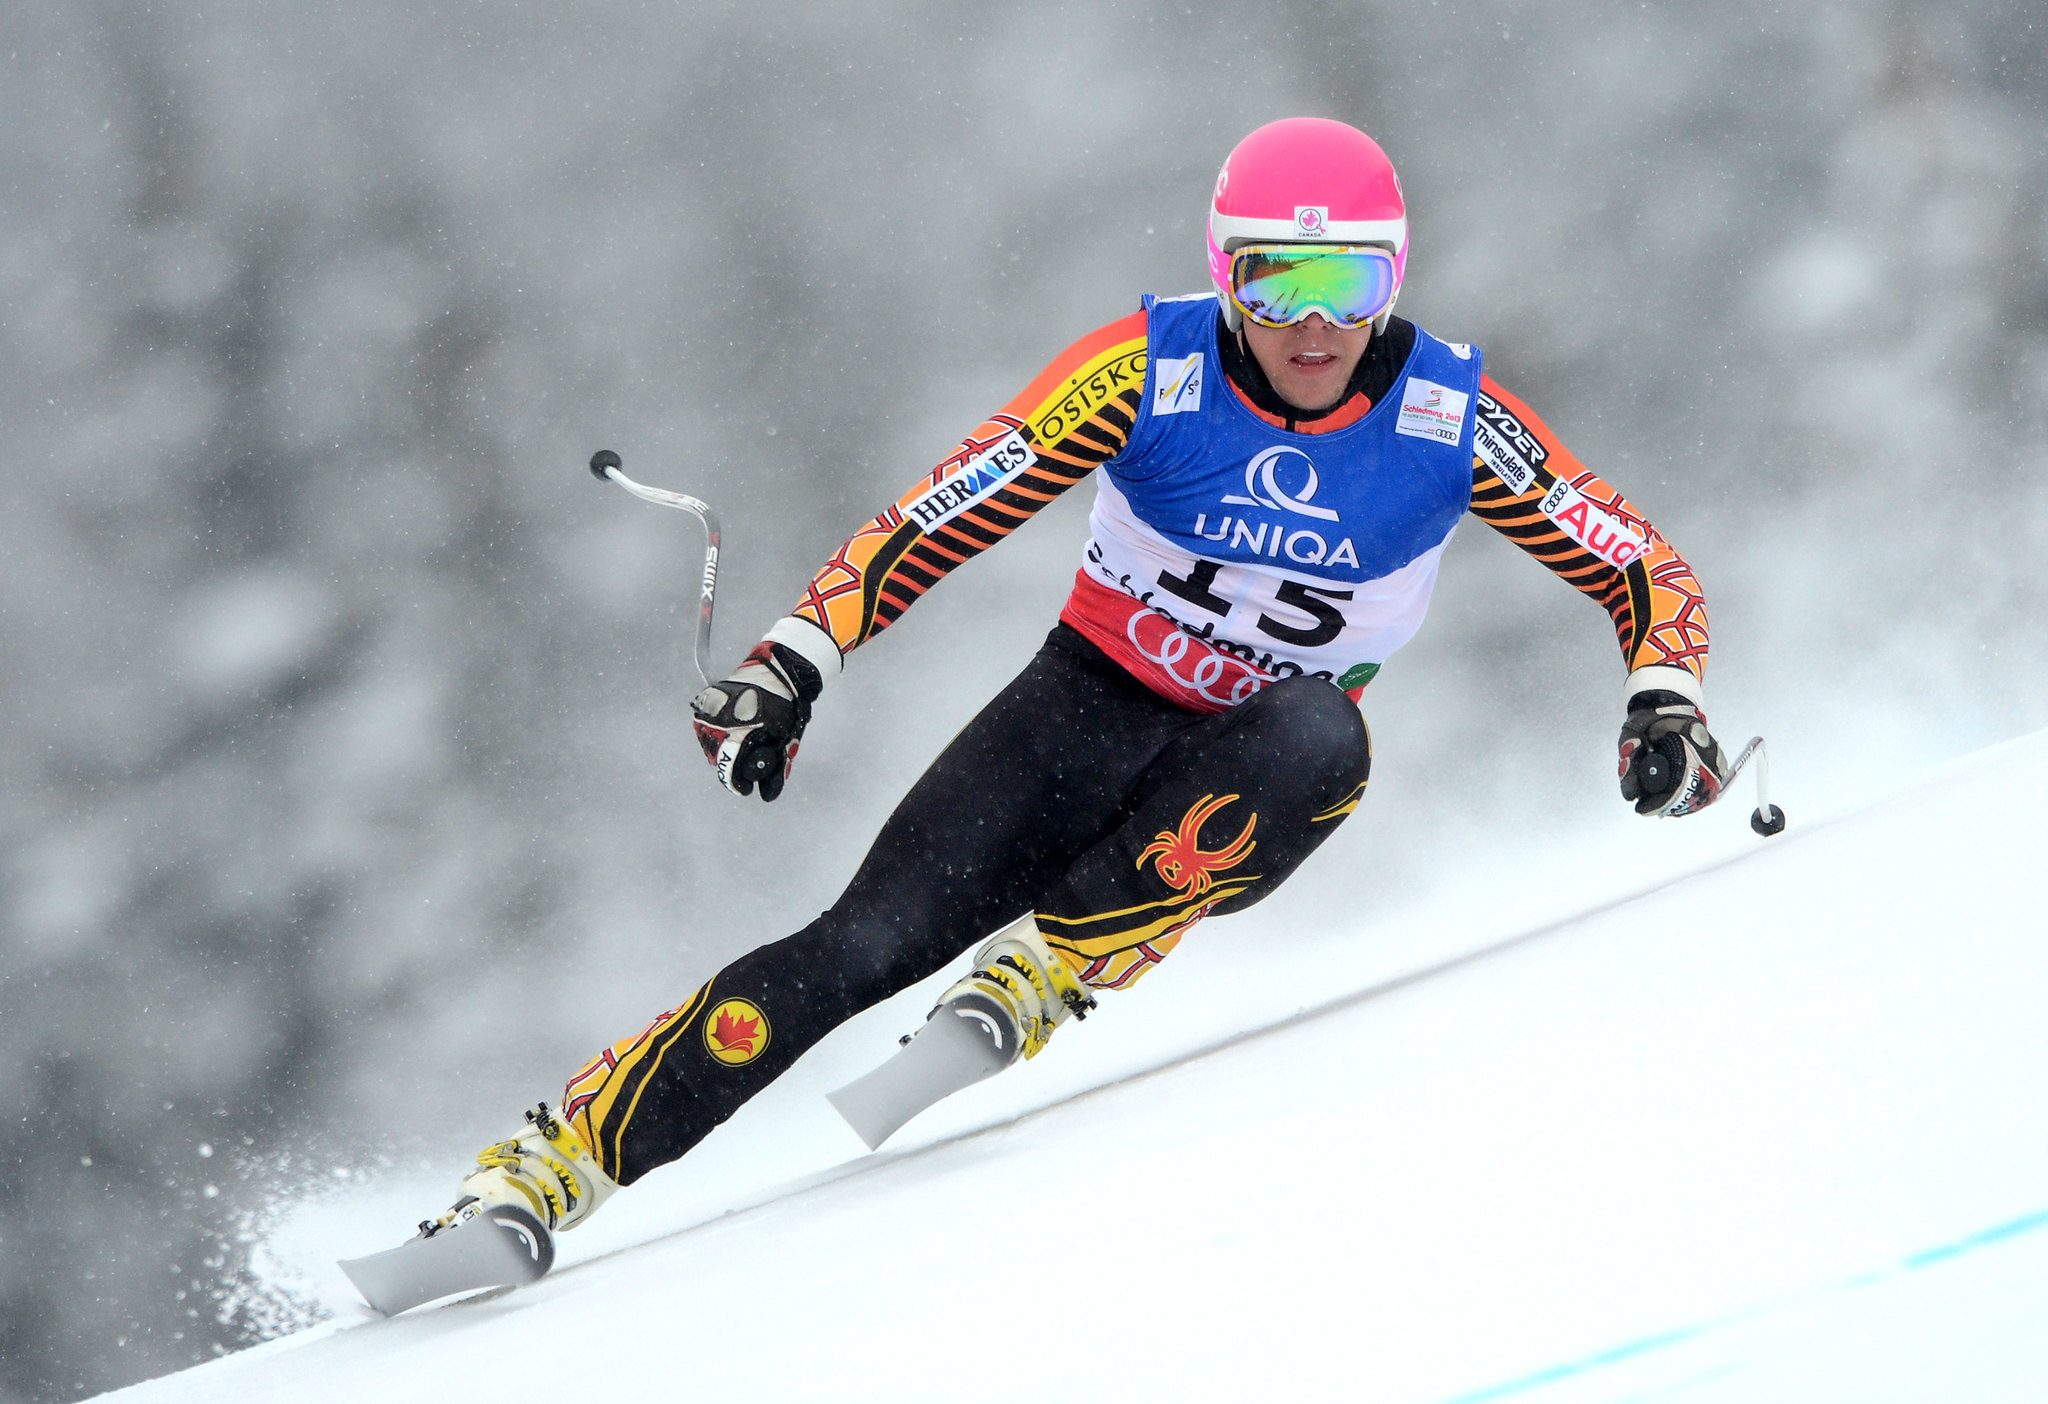 Ben Thomsen looks ahead to the next turn in the men's downhill at the 2013 world championships in Schladming, Austria.